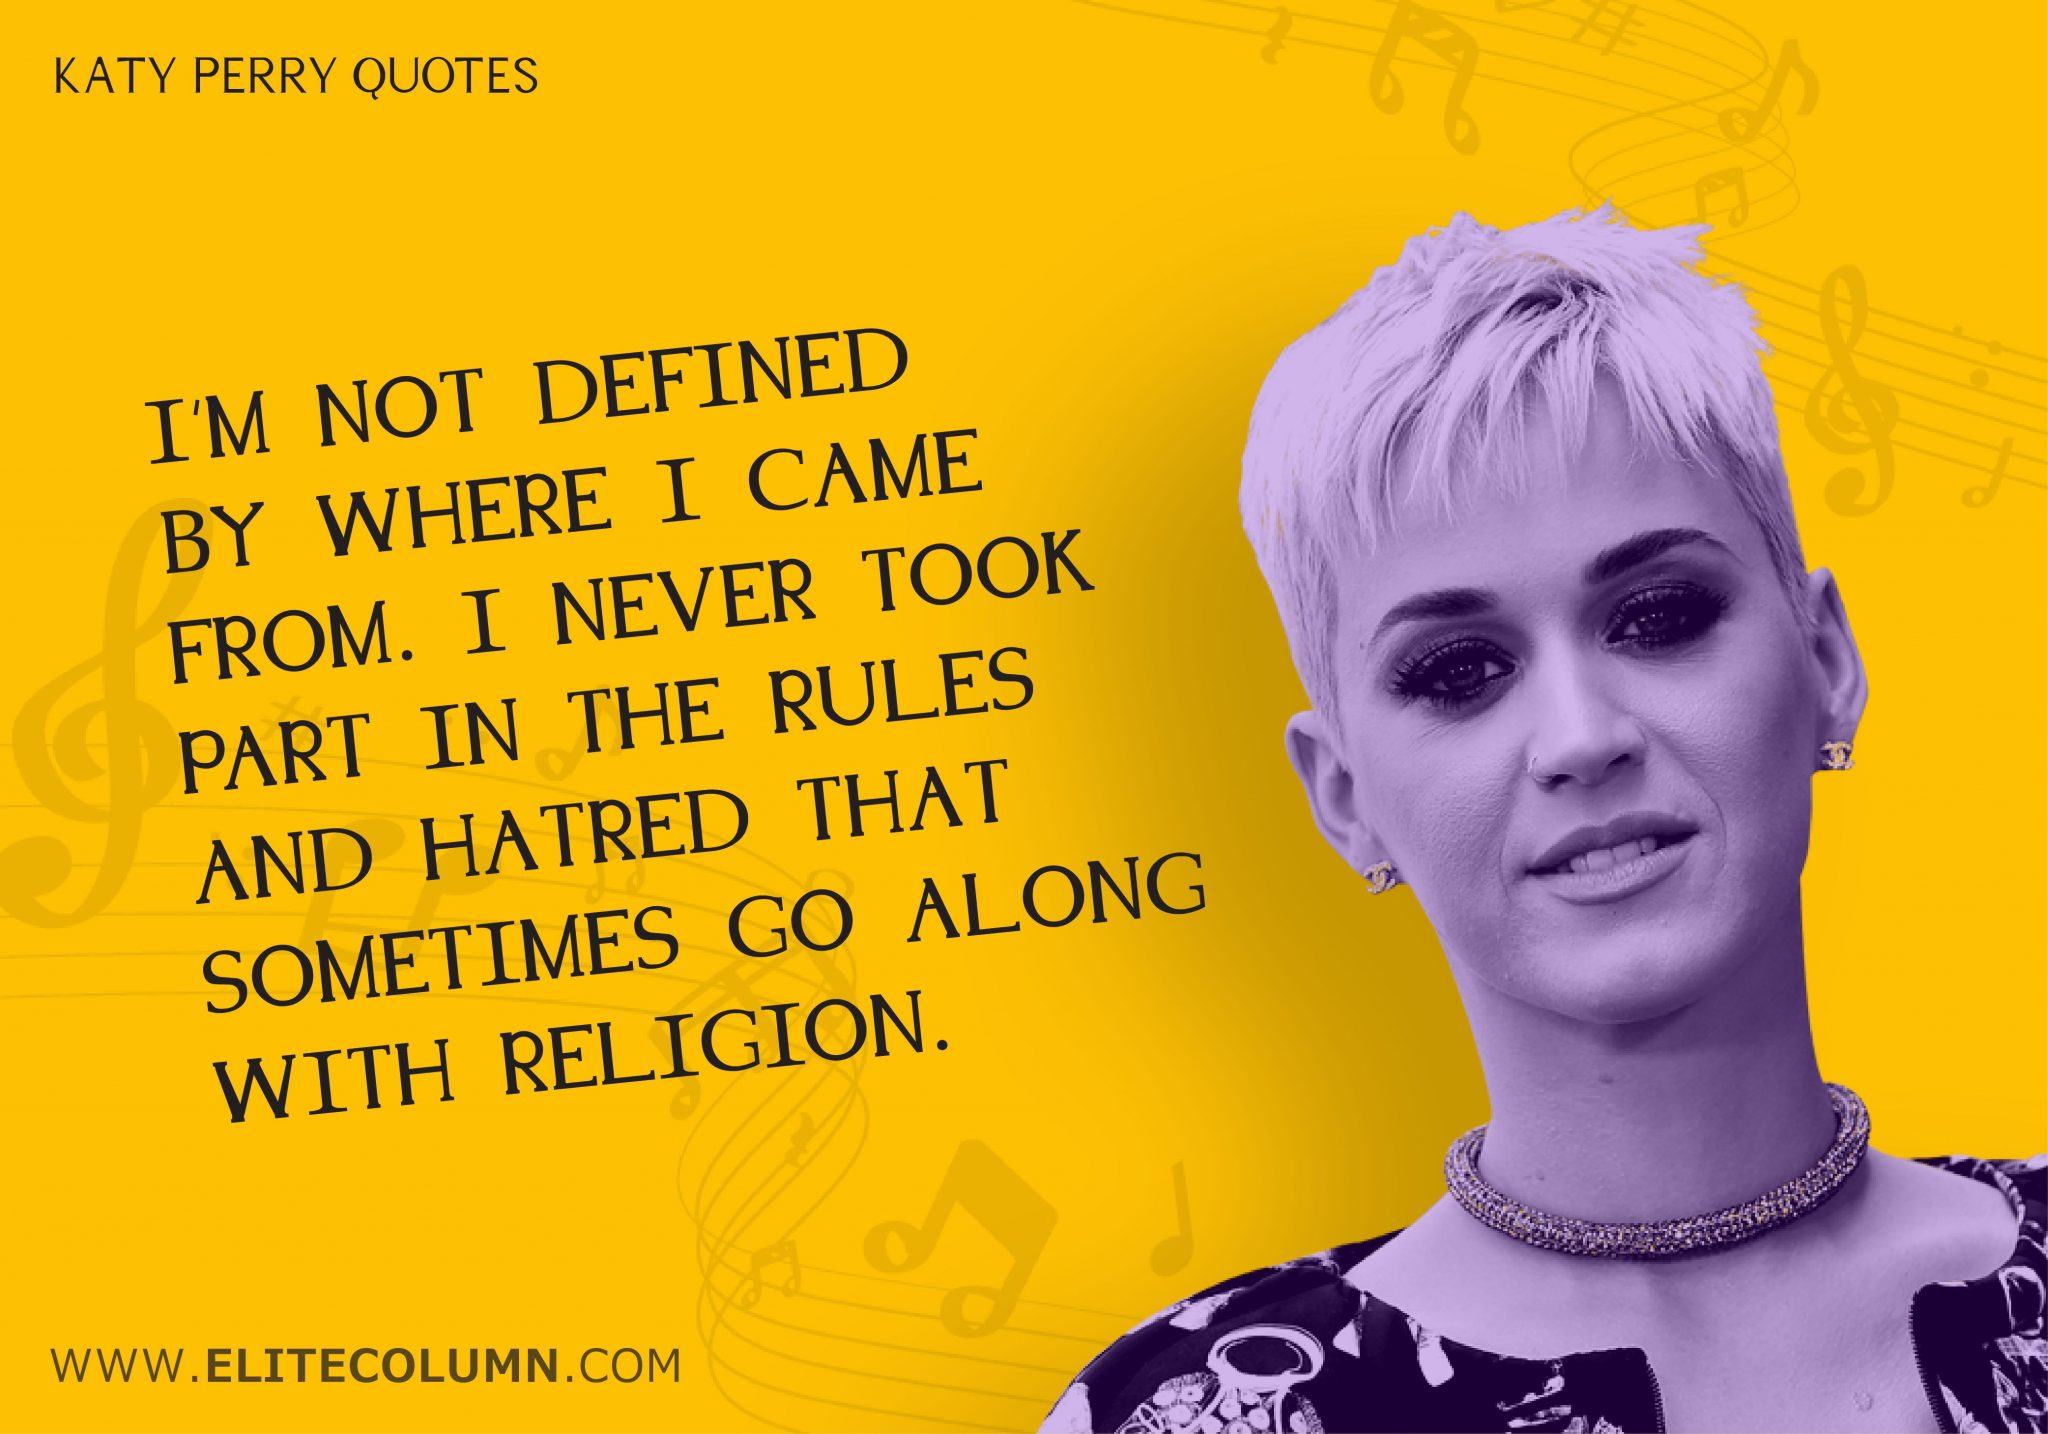 Katy Perry Quotes (12)